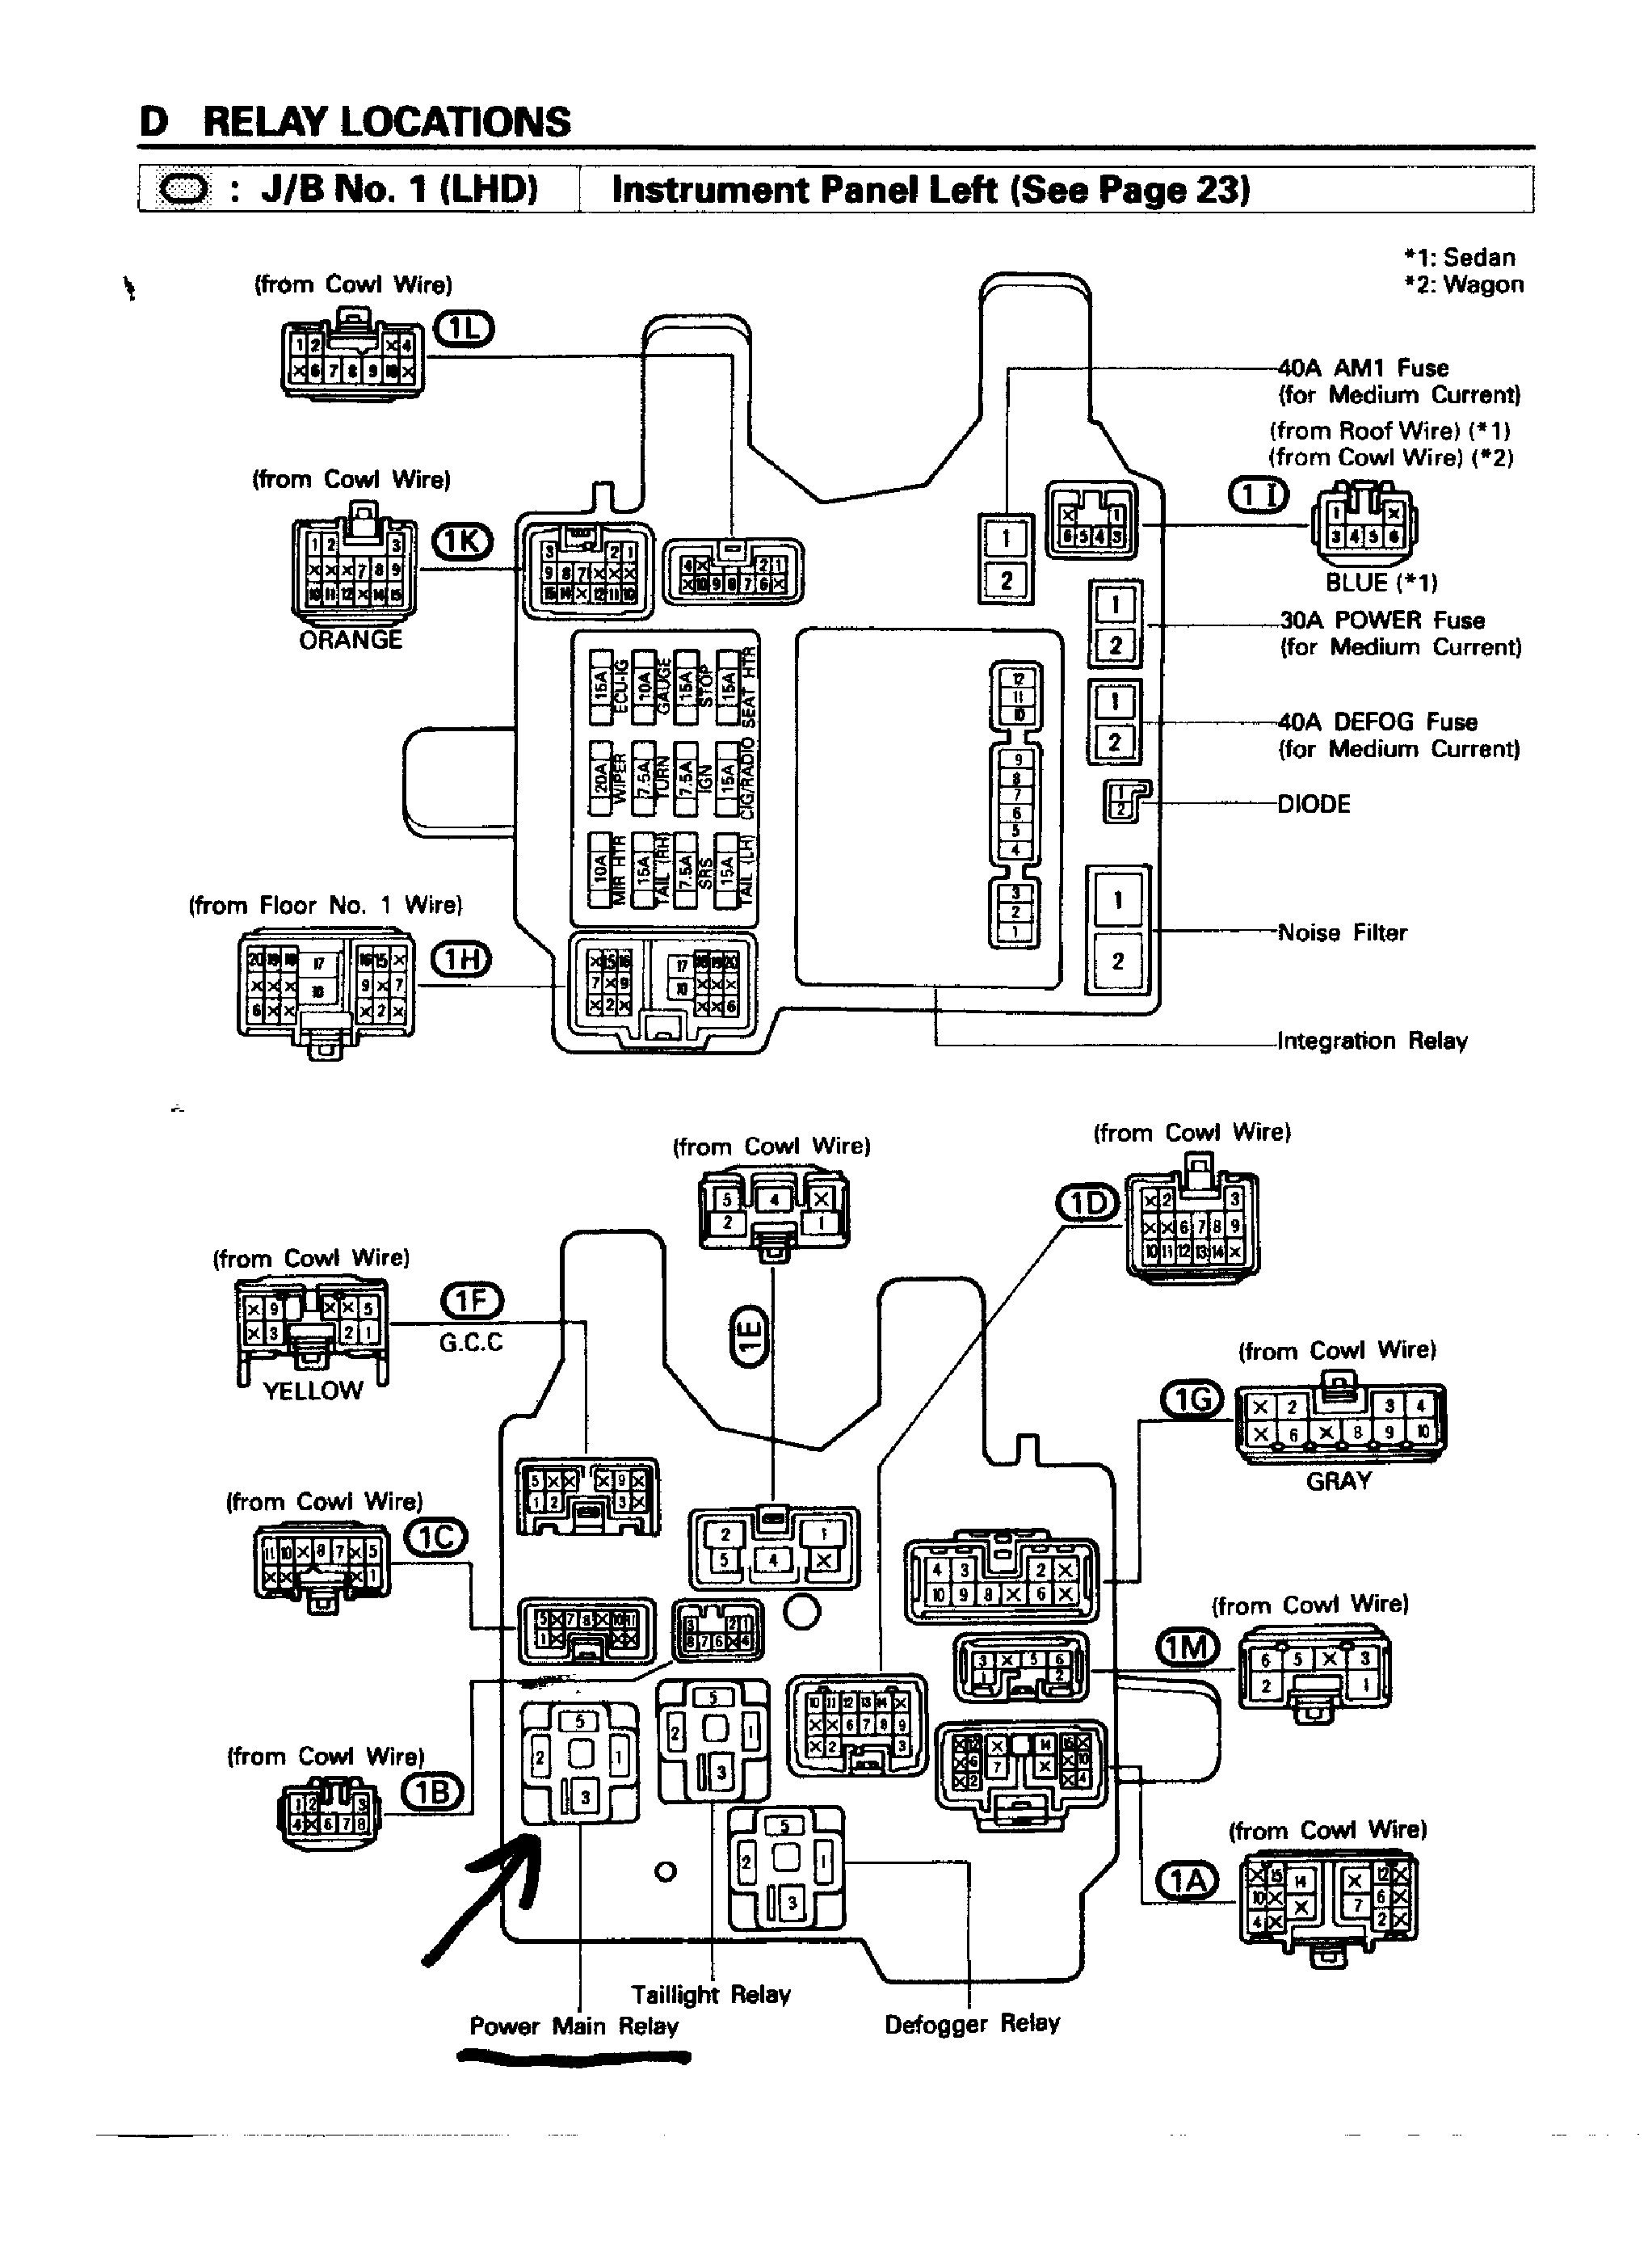 corolla electrical wiring diagram model electrical wiring diagram2010 toyota corolla wiring diagram owner manual \u0026 wiring diagram corolla electrical wiring diagram model electrical wiring diagram